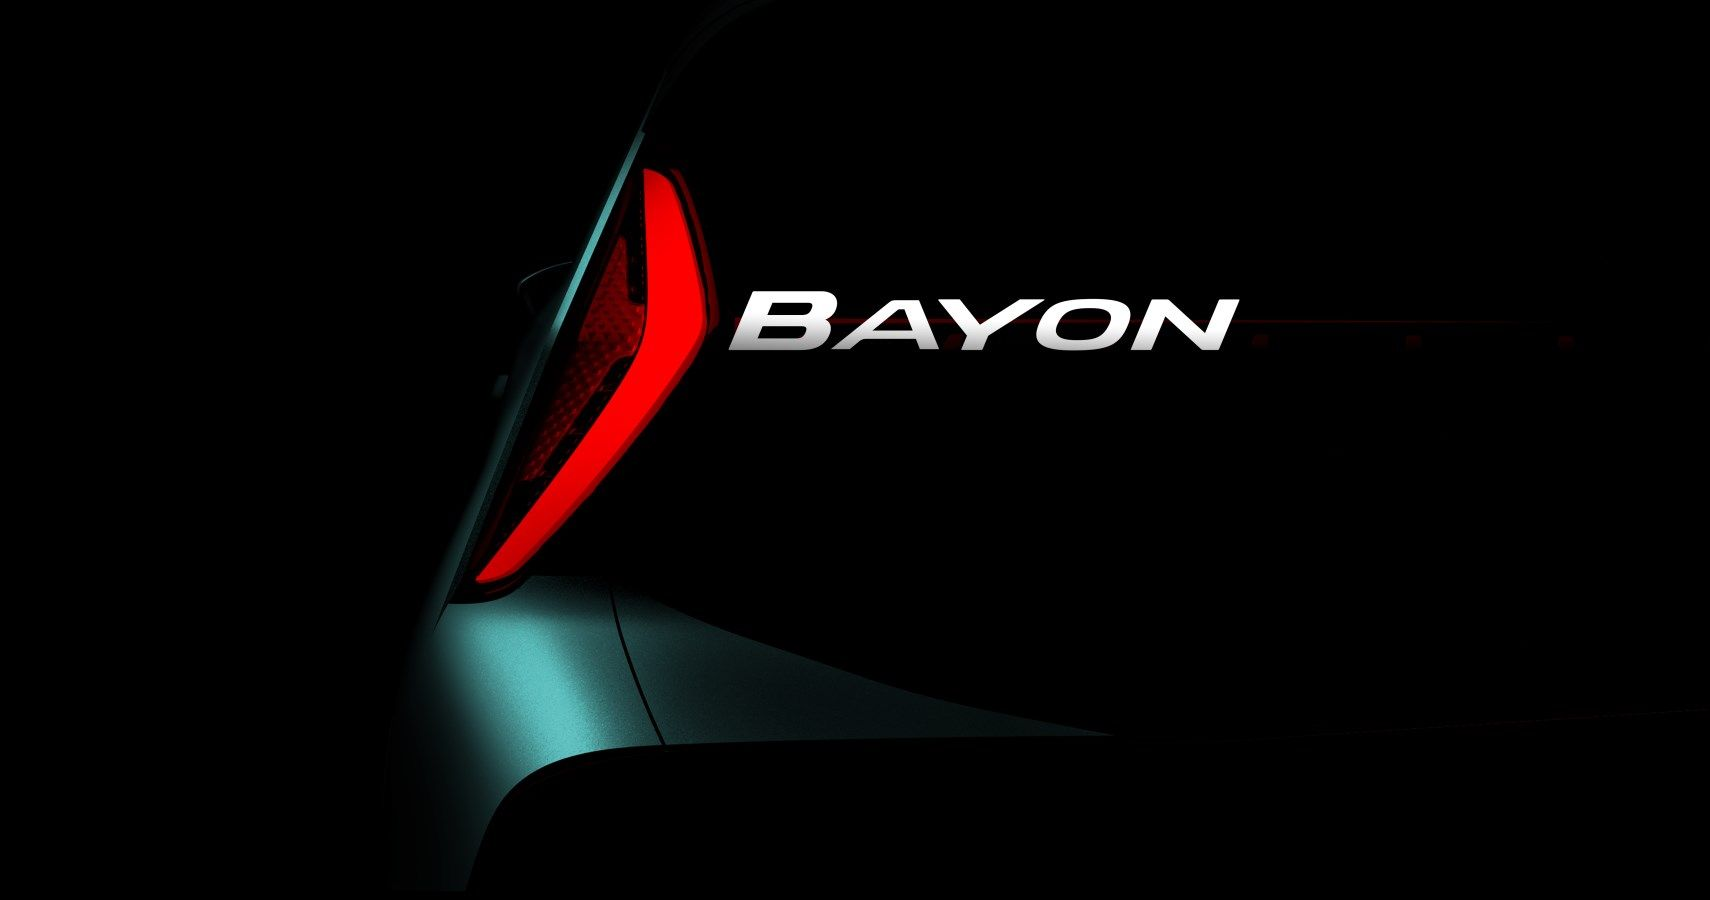 Official 2021 Hyundai Bayon Images Tease The SUV's Front And Rear End